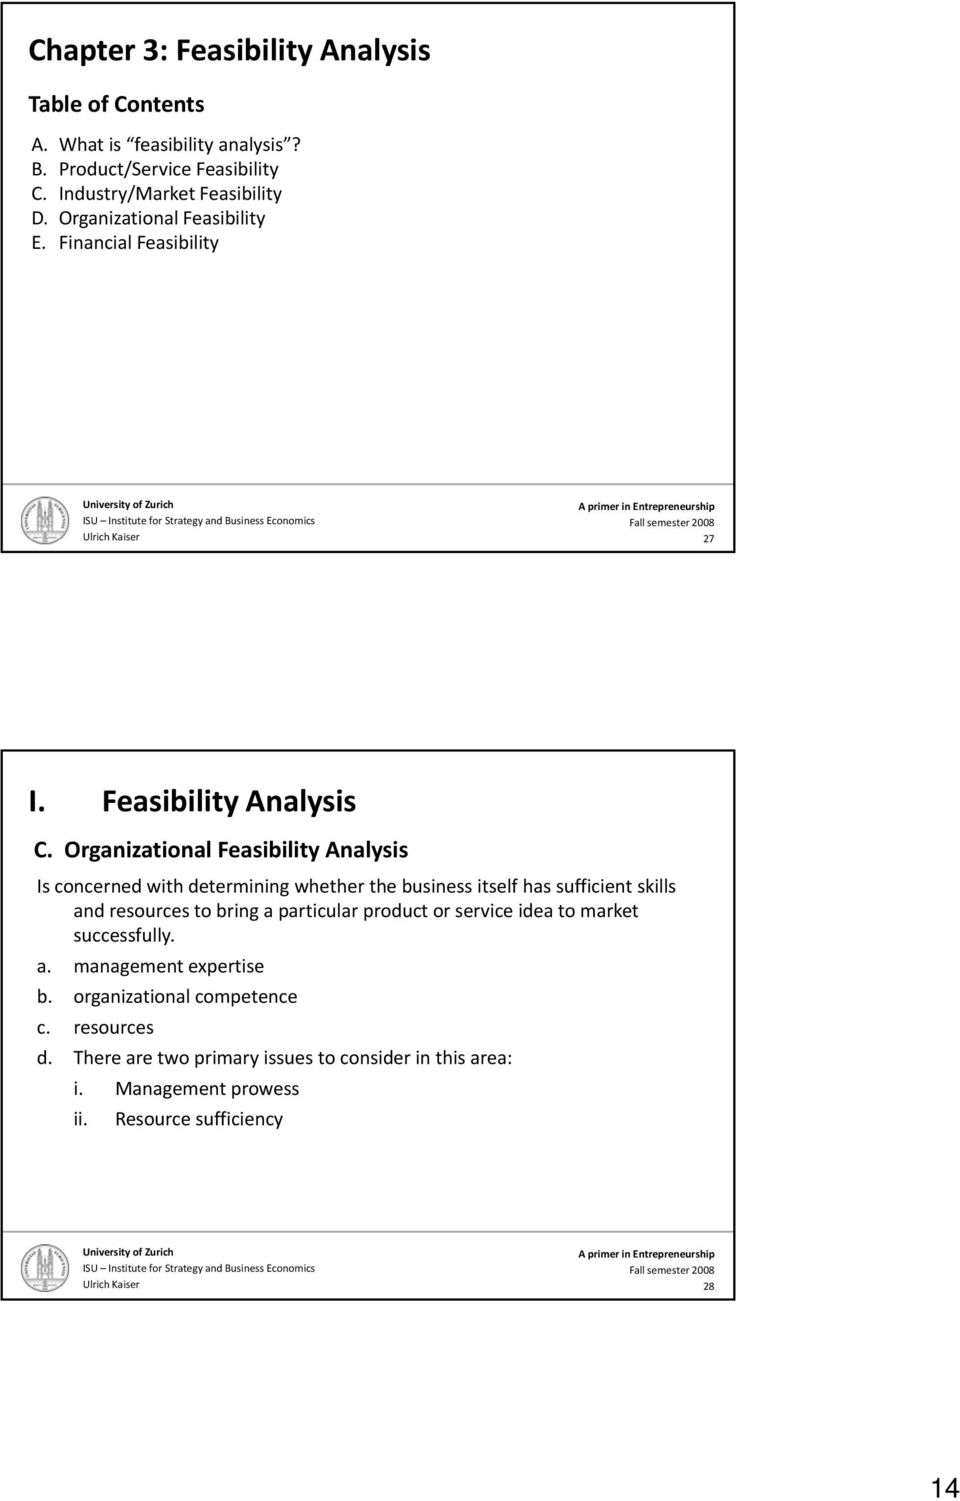 Organizational Feasibility Analysis Is concerned with determining whether the business itself has sufficient skills and resources to